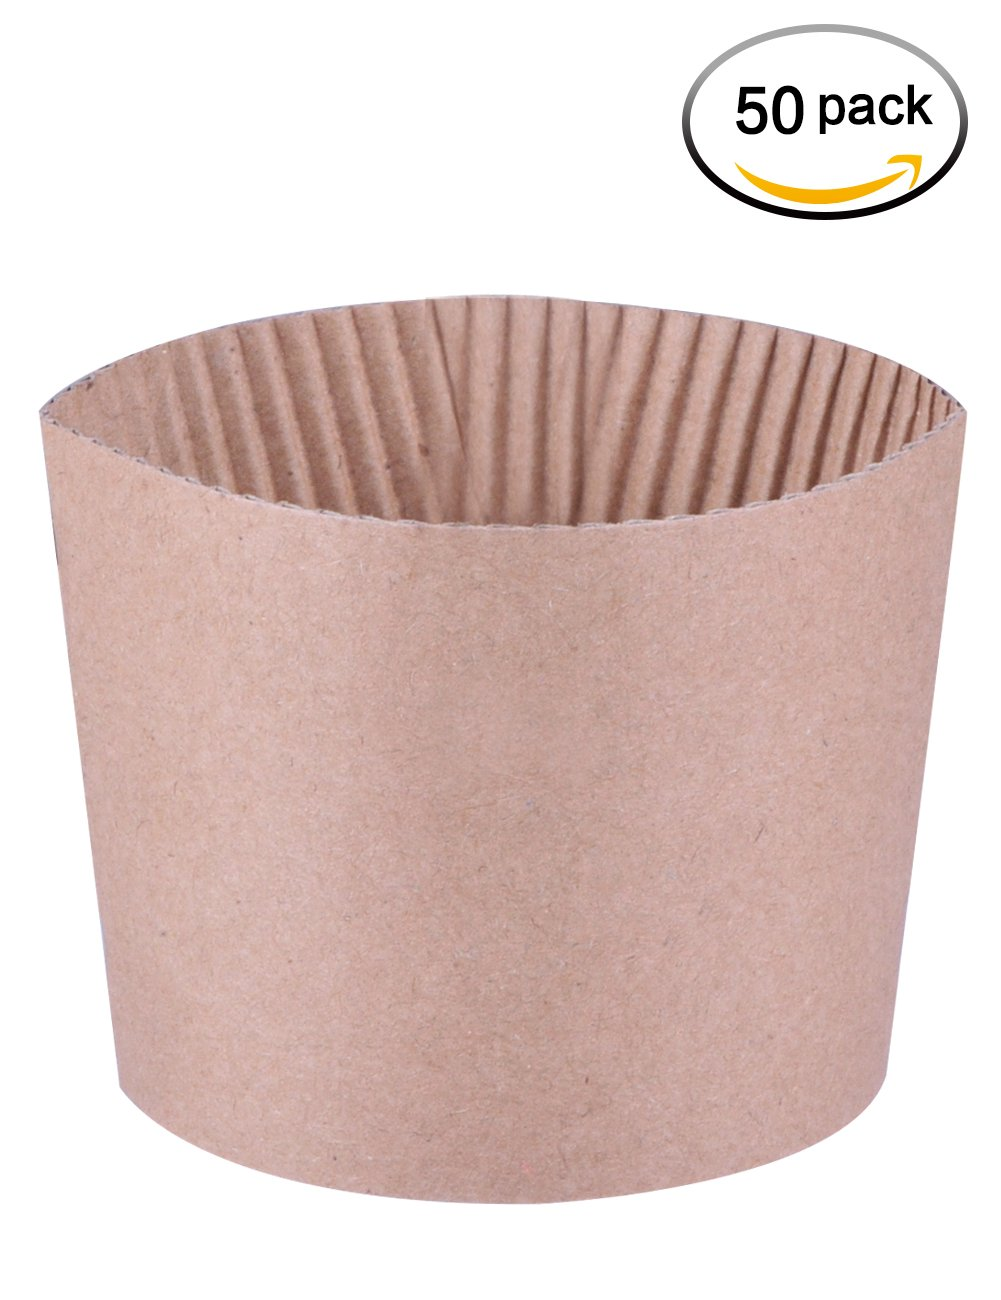 Luckypack 50 Count Cup Sleeve Corrugated Jacket Cafe Drink  Disposable Paper Coffee Cup Sleeves Reusable Holder Cardboard For Hot Drinks, 12oz./16 oz./20 oz.